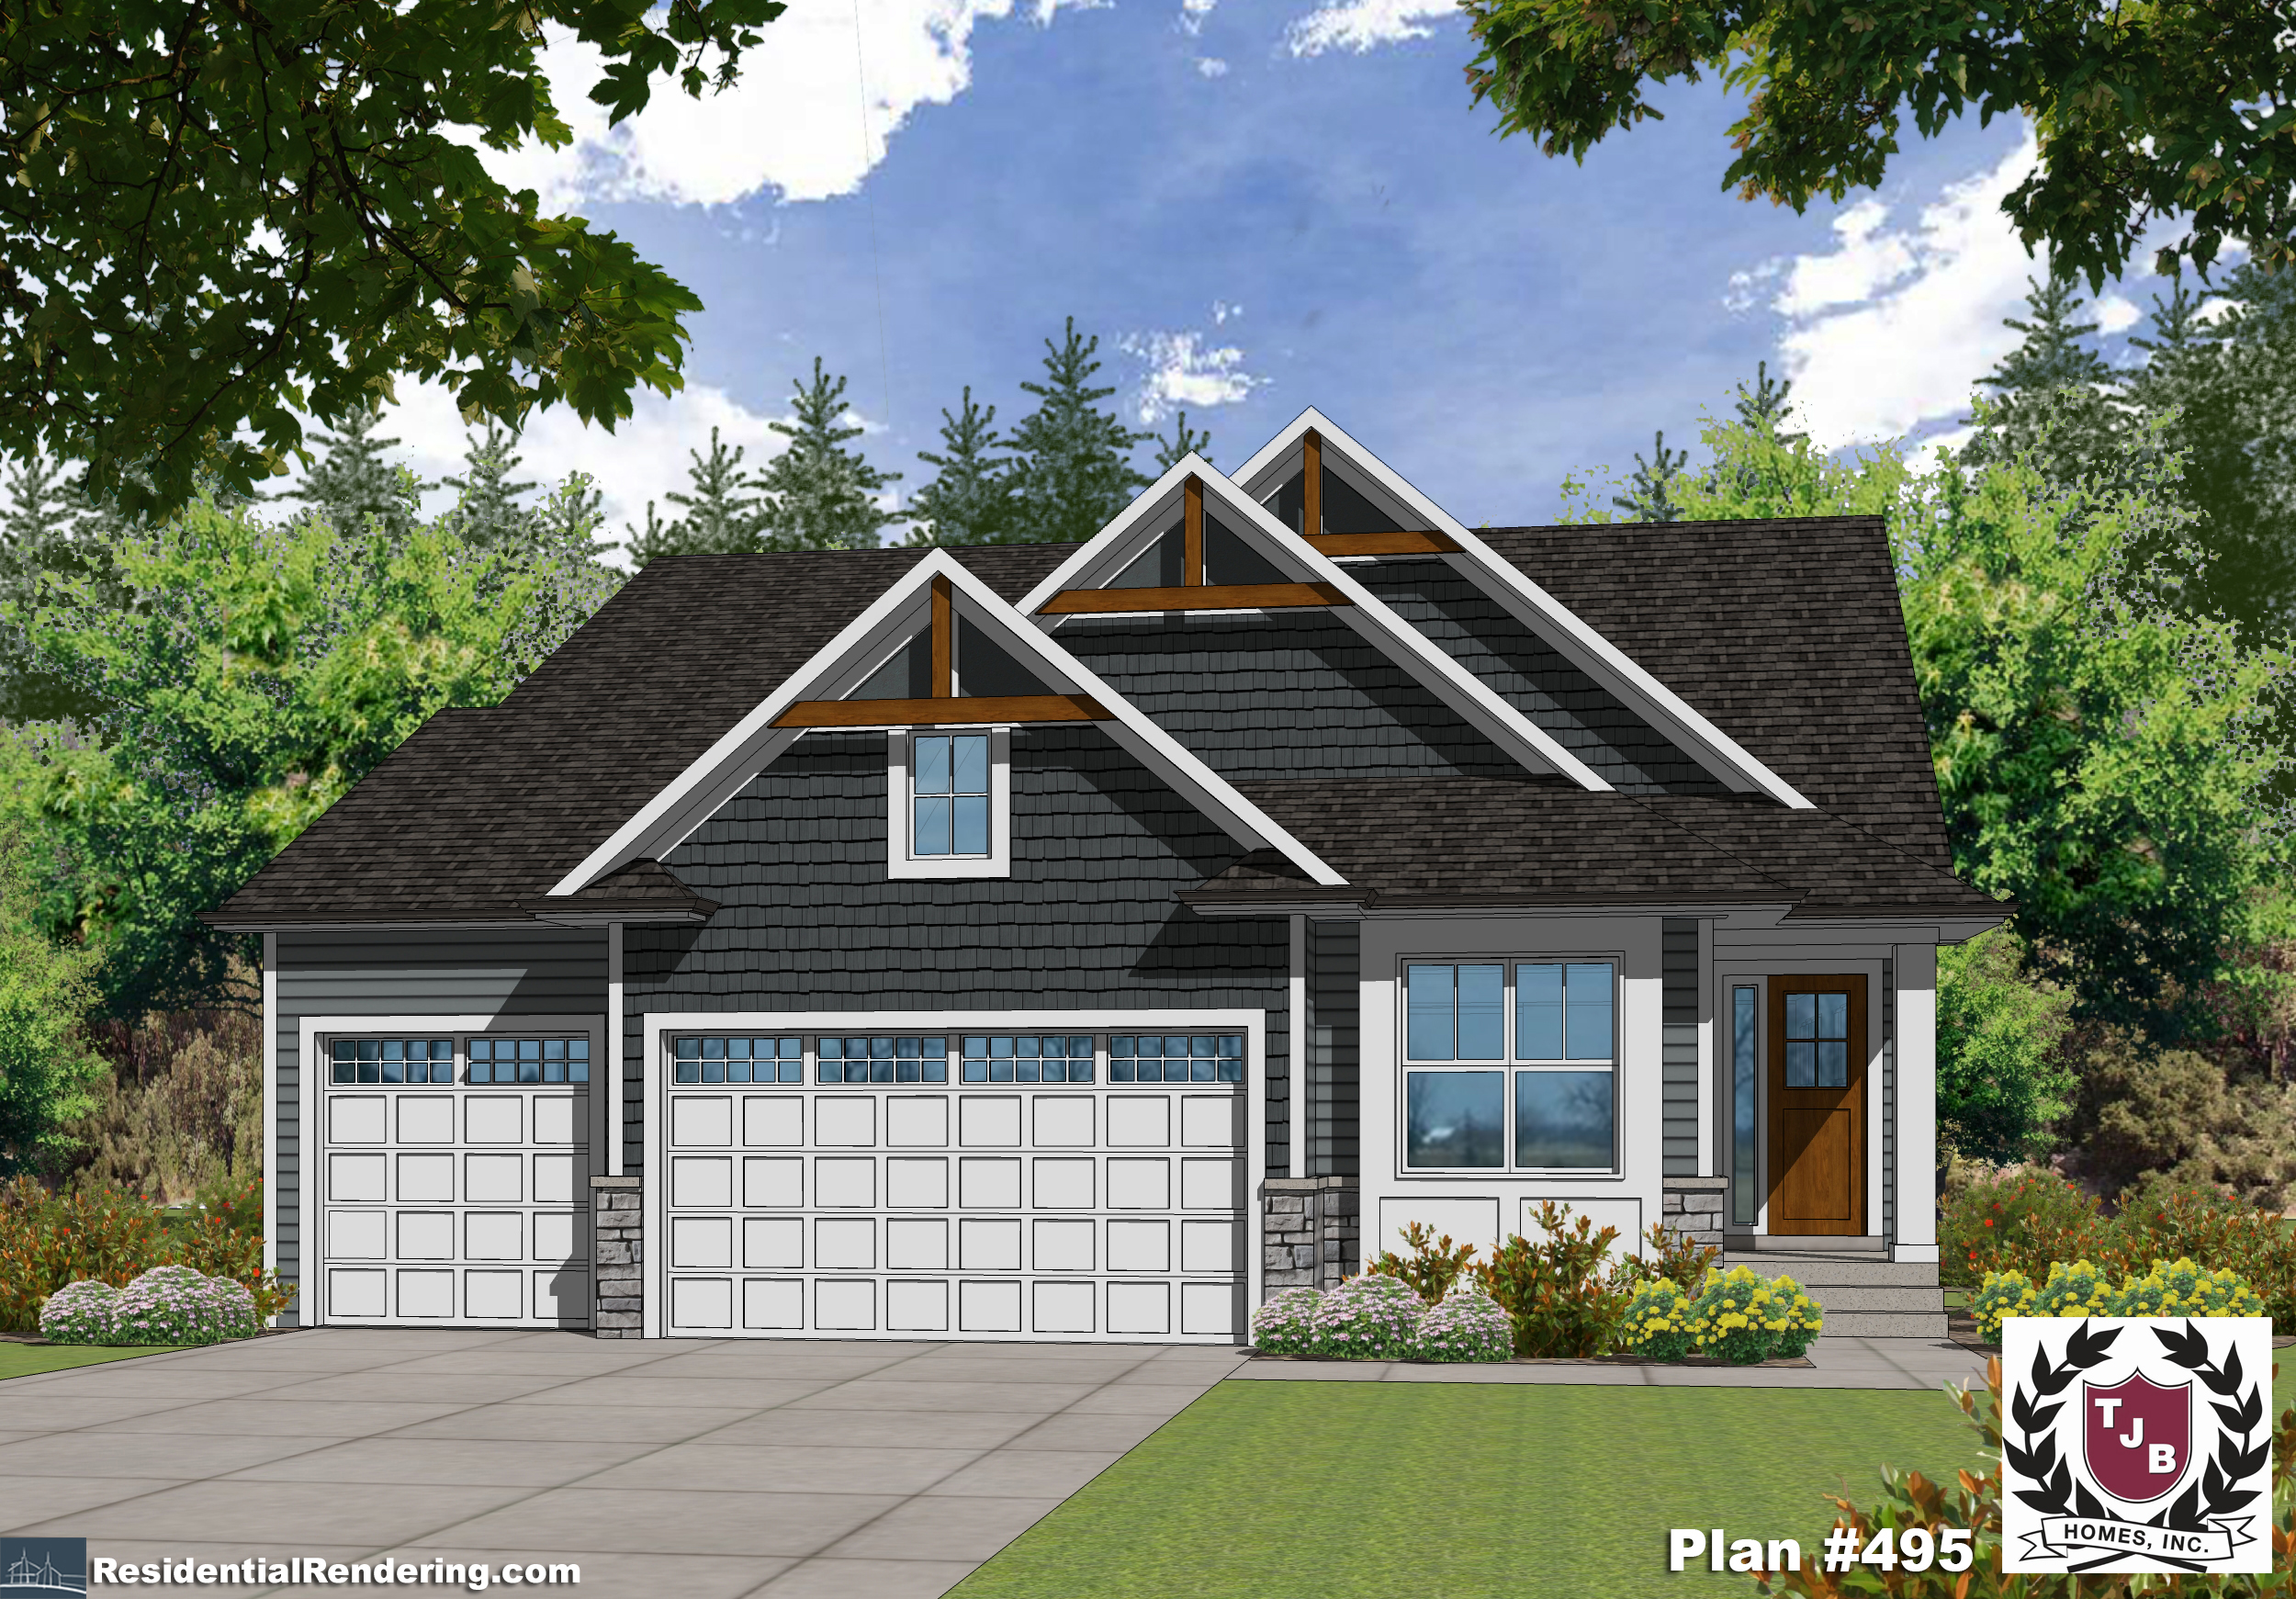 Lake Harriet TJB Home Plan #495 Front Color Rendering